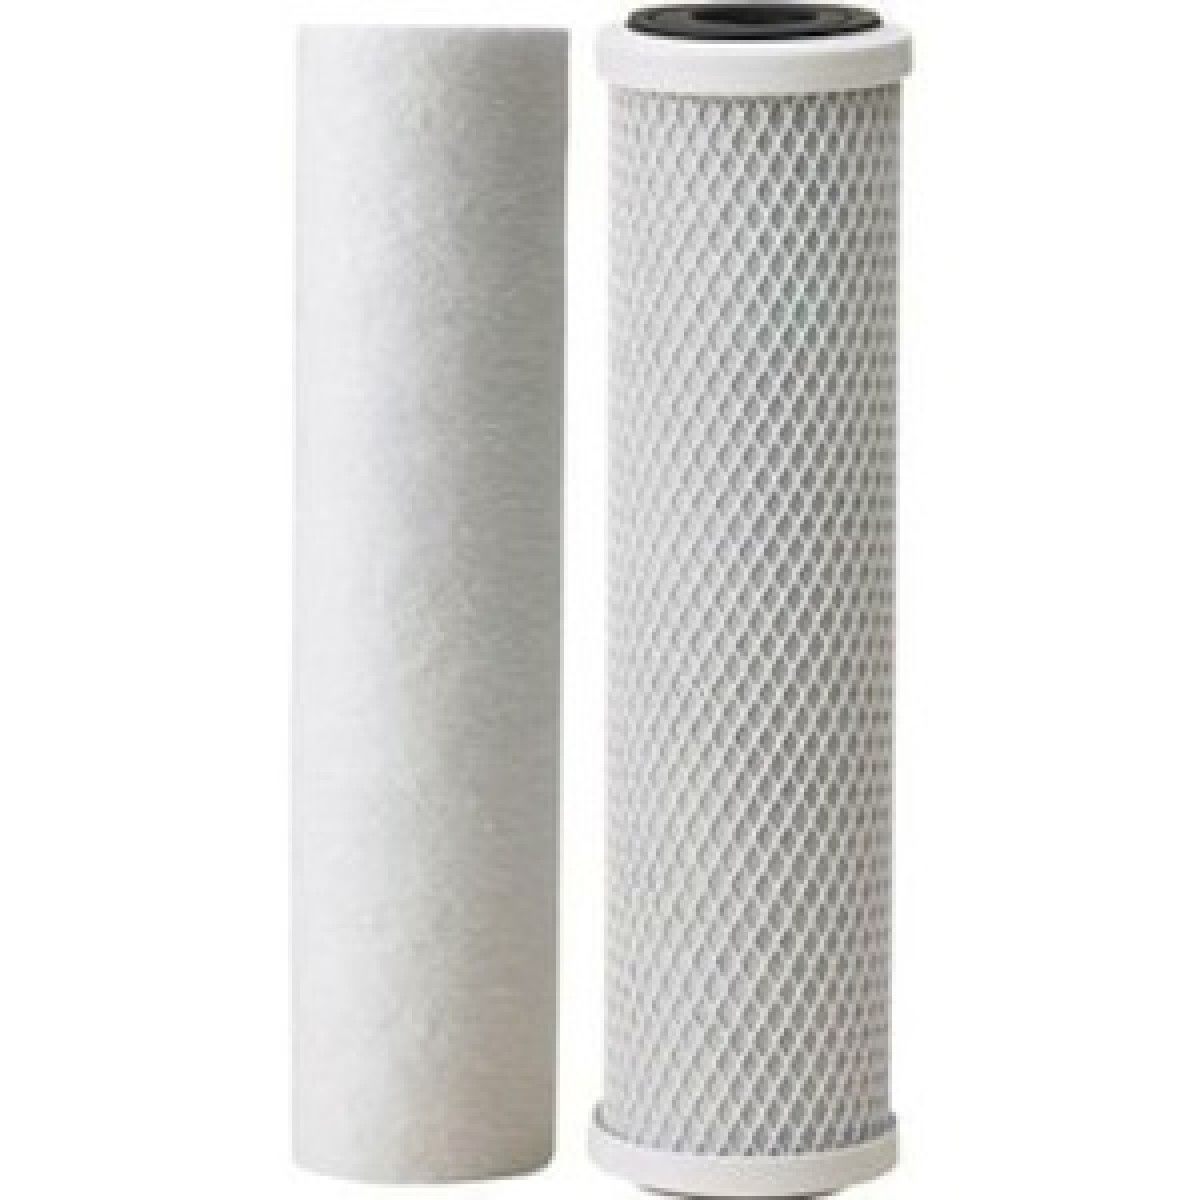 Ror2000 S 05 Reverse Osmosis Pre Filter Replacement By